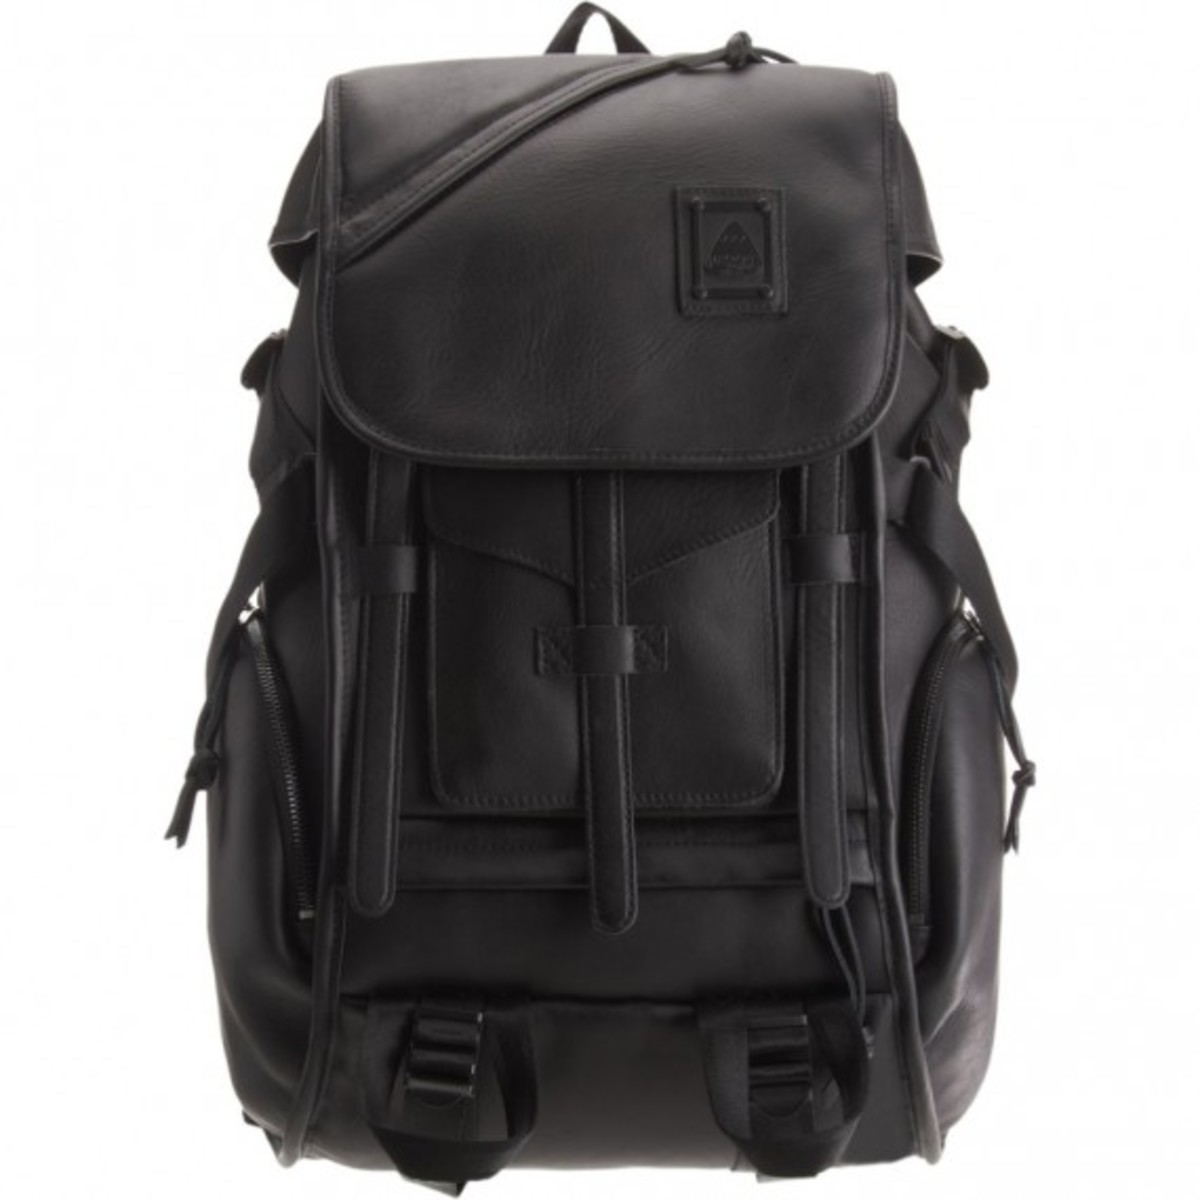 barneys-jansport-heritage-carbon-collection-thompkins-01